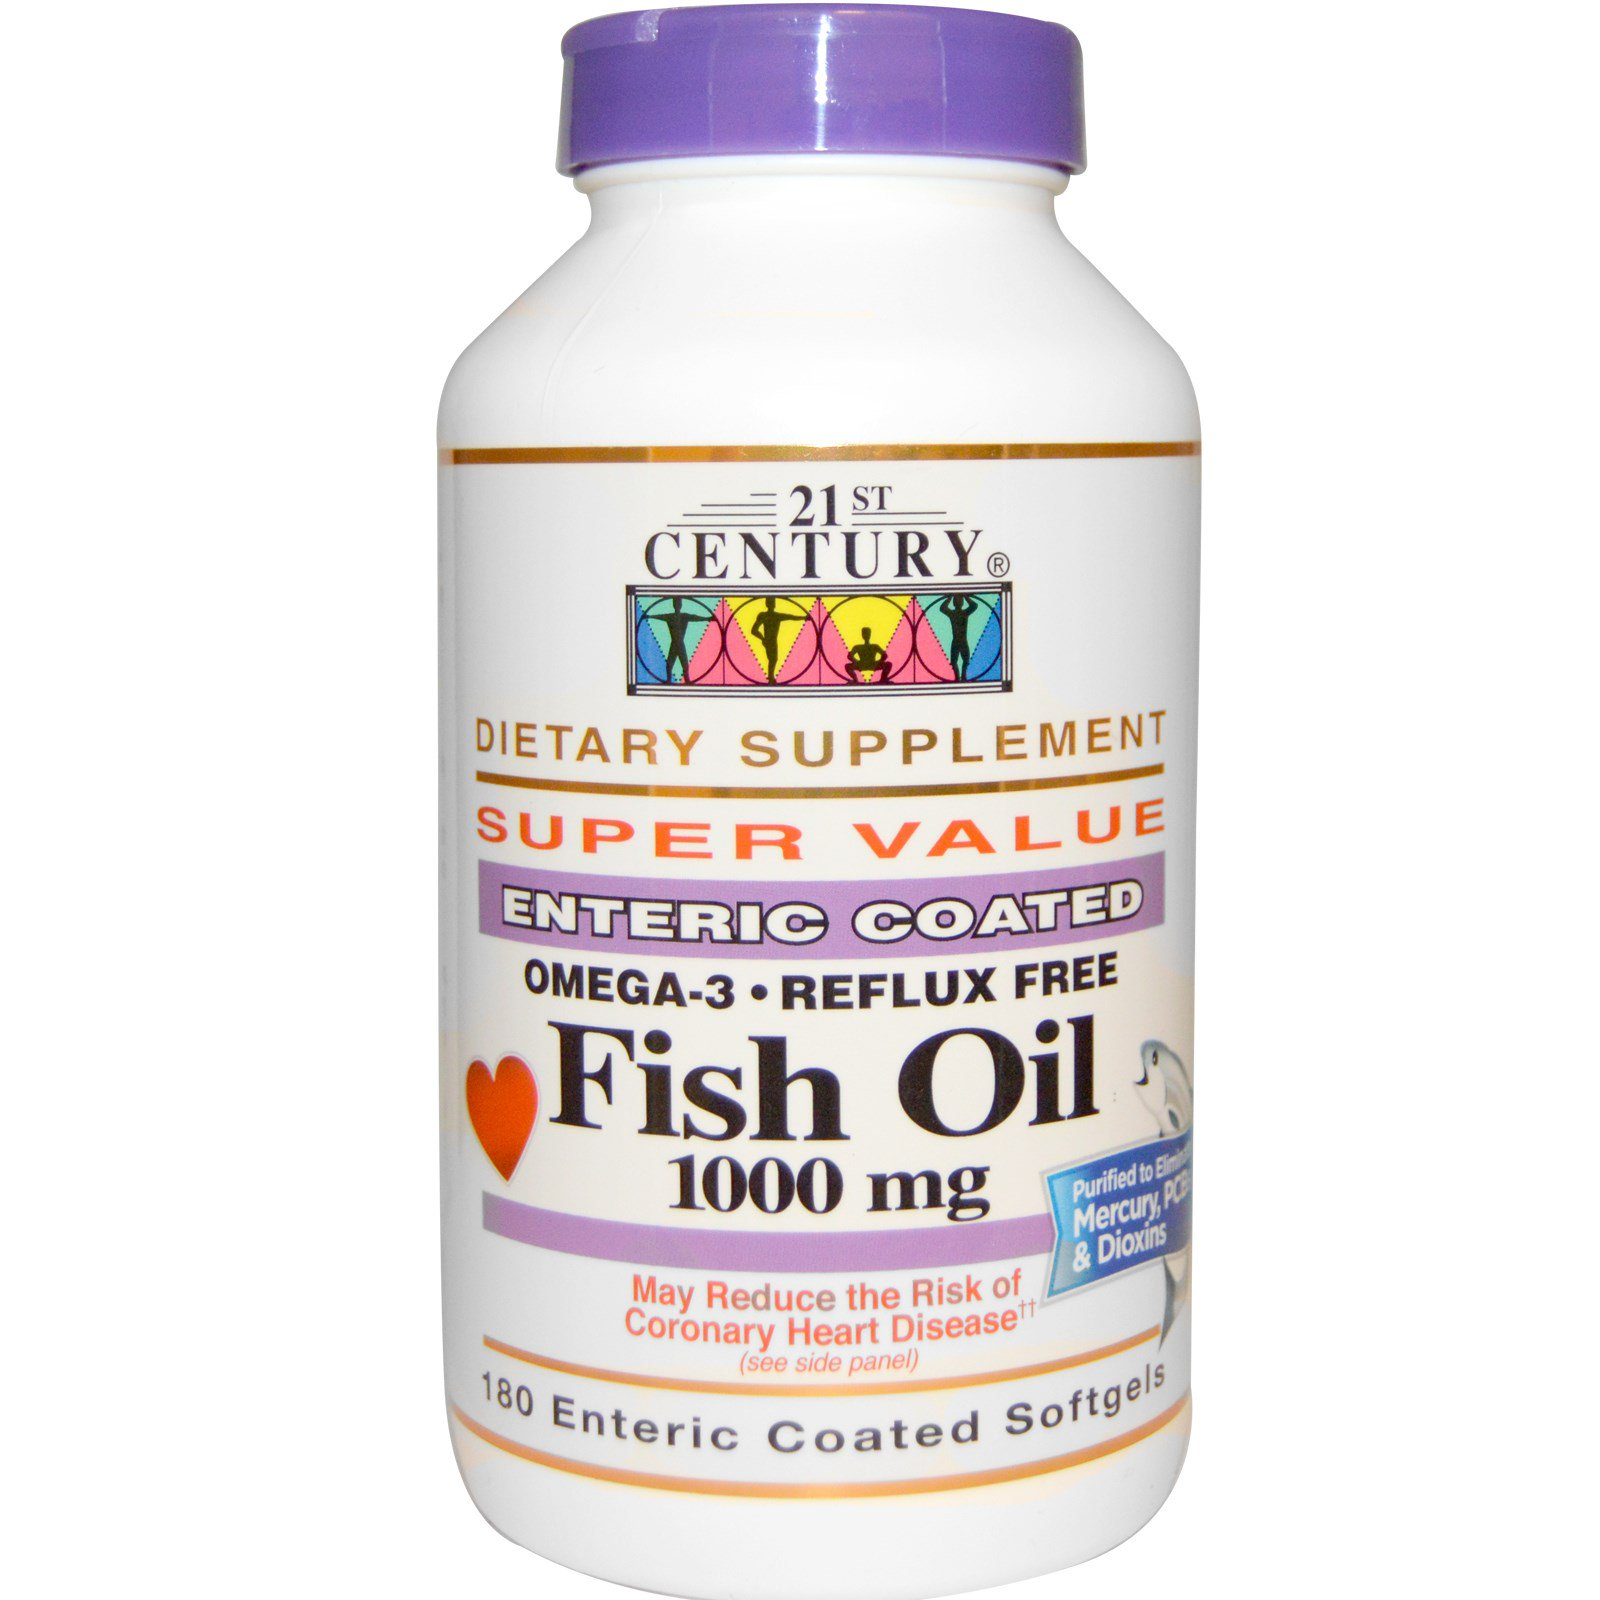 21st century fish oil 1000 mg 180 enteric coated for Fish oil 1000 mg